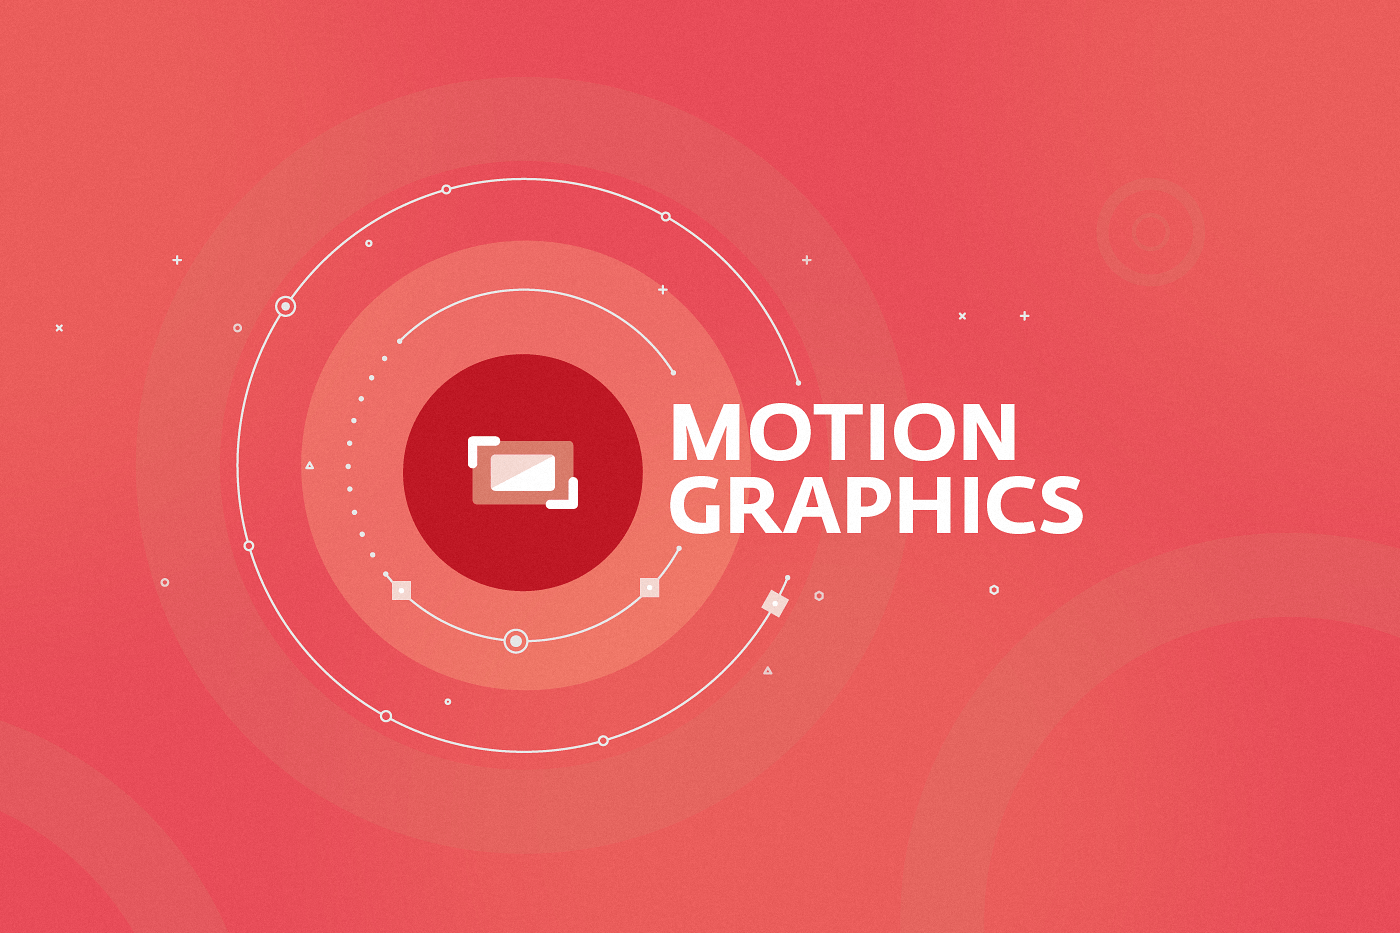 motiongraphics - Art of 3D Gifs with Alexandra Katz